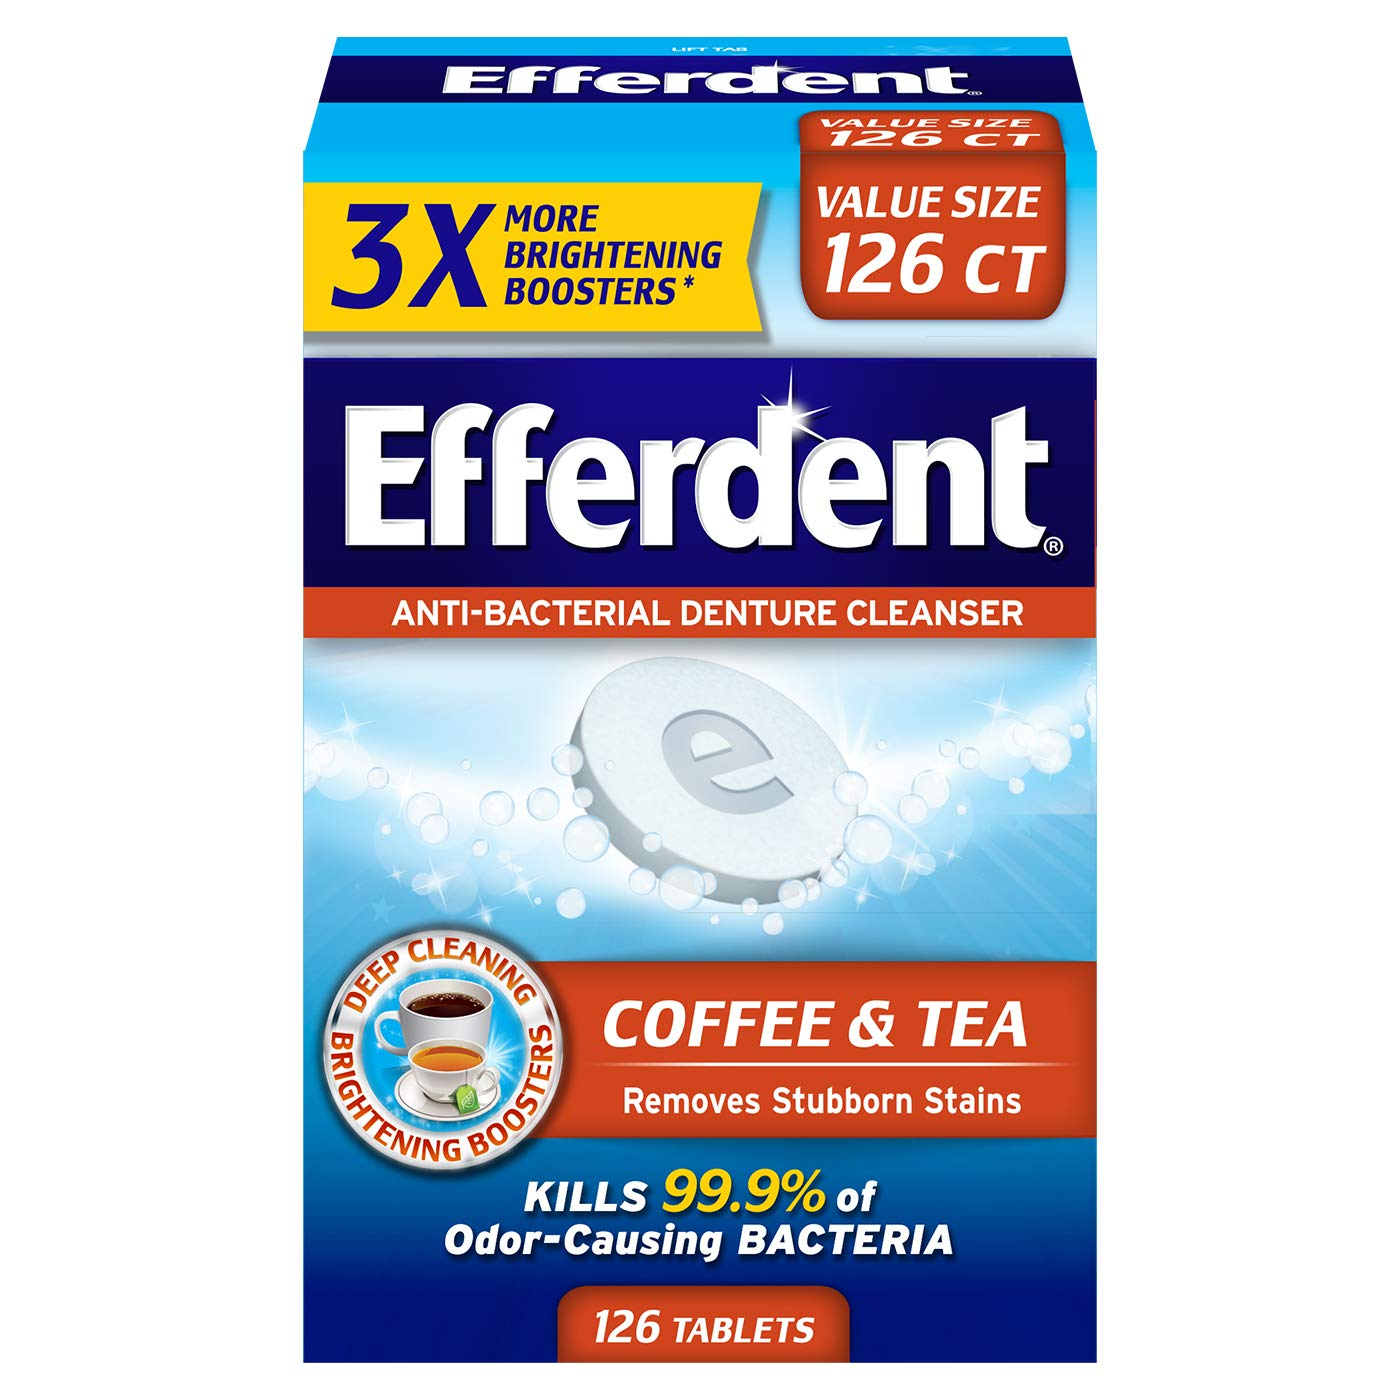 Efferdent Coffee & Tea Denture Cleanser | 126